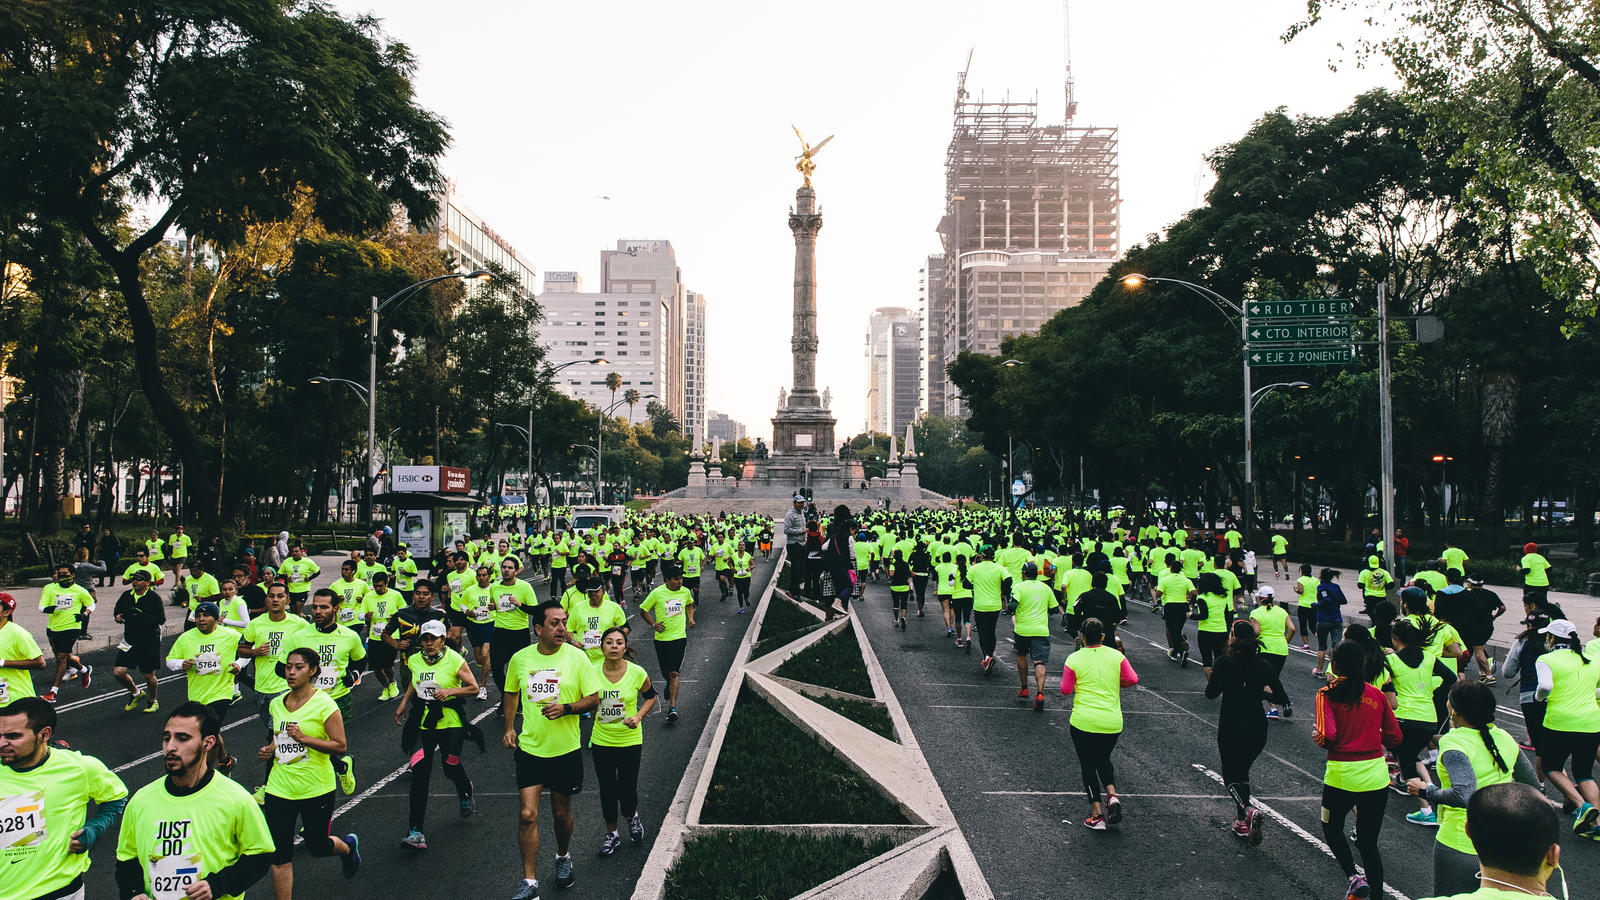 000 20 We Run Celebrate Mexico City News Nike Runners Series